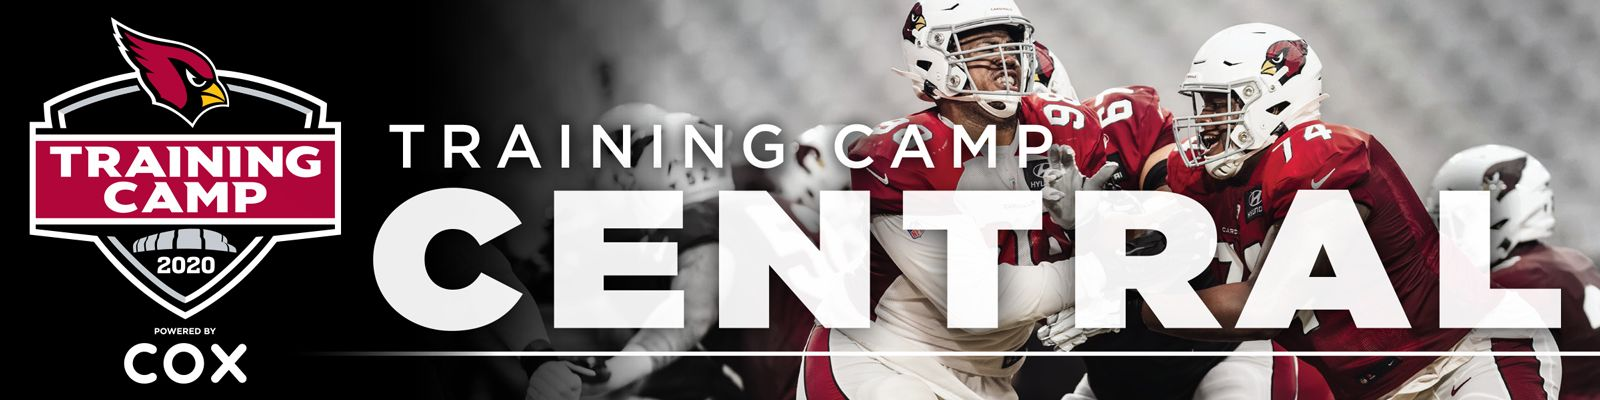 Training Camp Central Header 2020 Powered By Cox